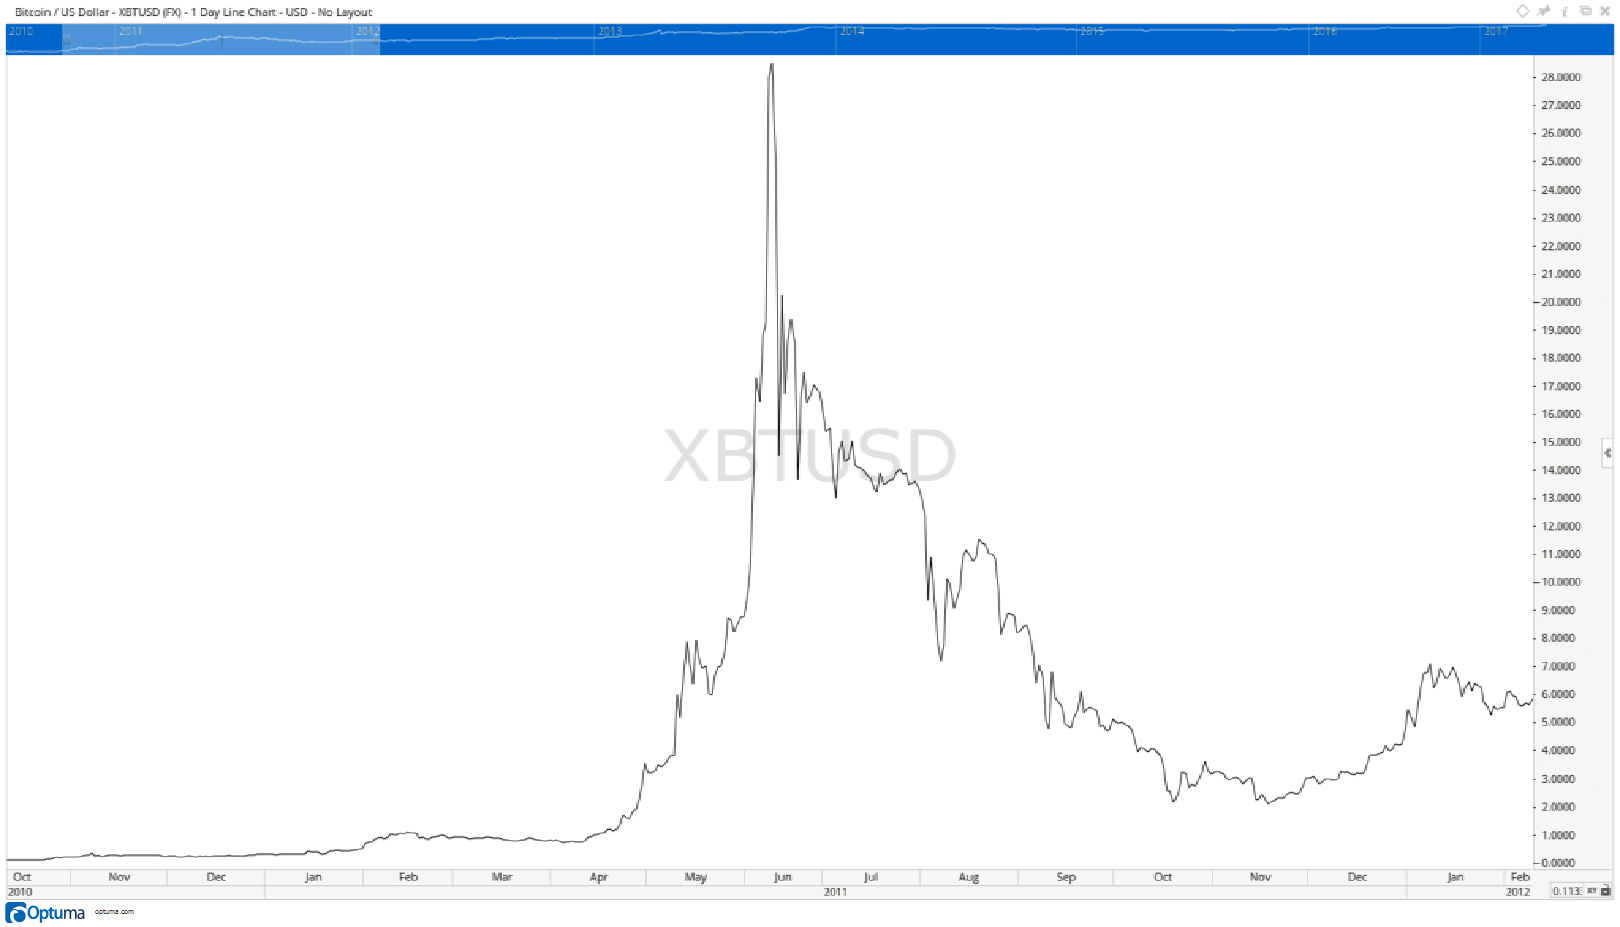 I'm sure all the hype surrounding bitcoin has you eager to find out how to benefit. However, every time bitcoin has surged, it plummeted shortly after.